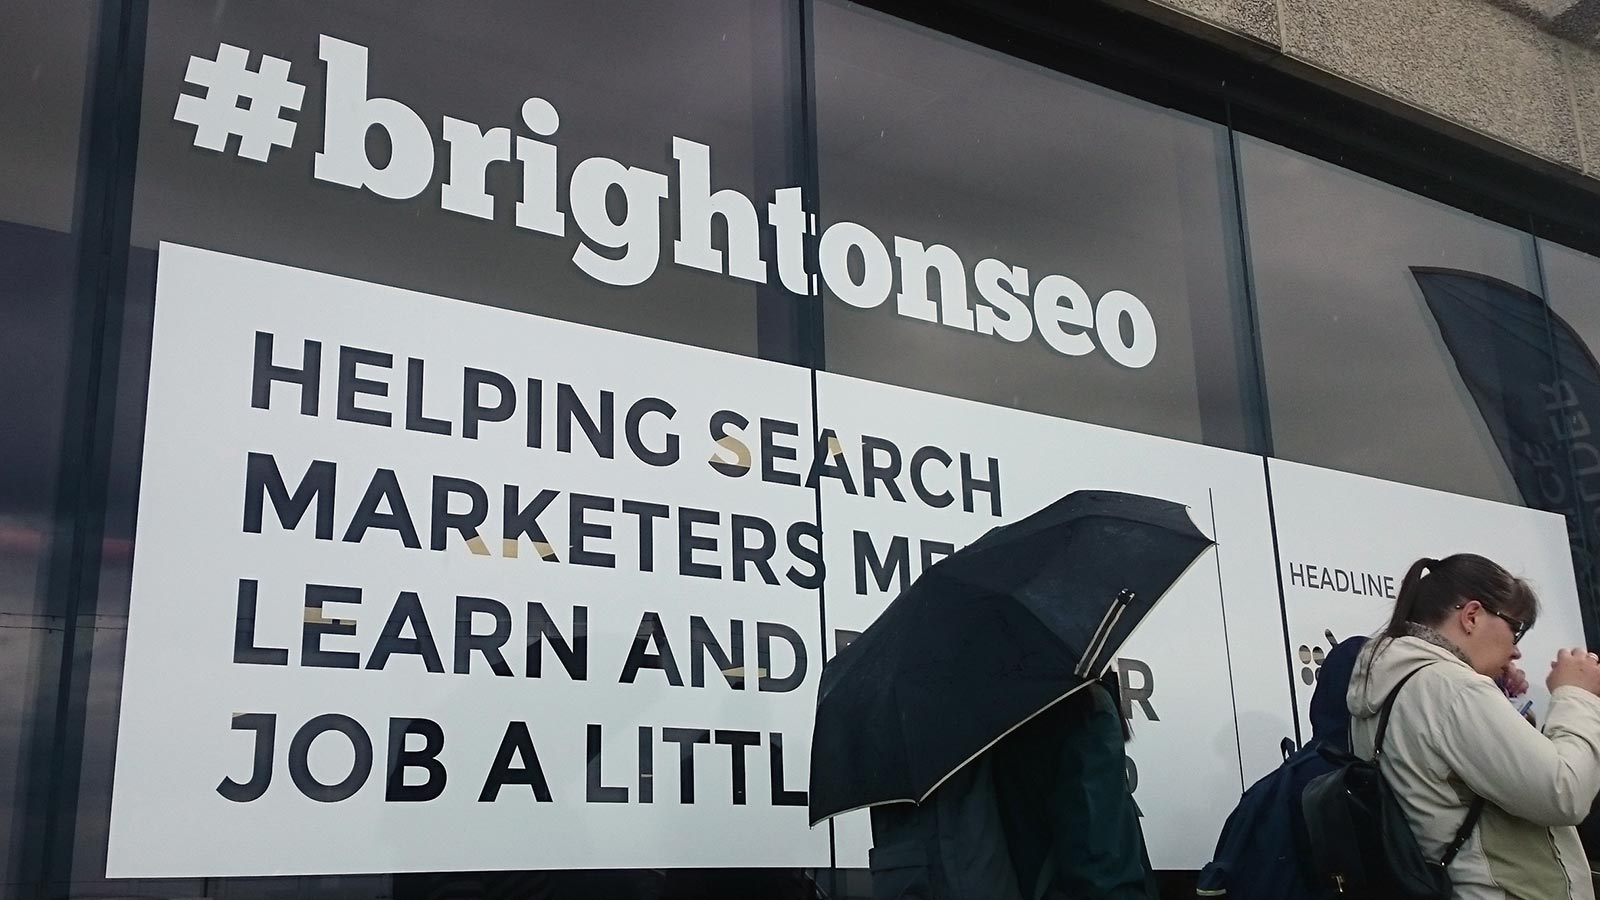 #brightonSEO conference helping search marketers learn